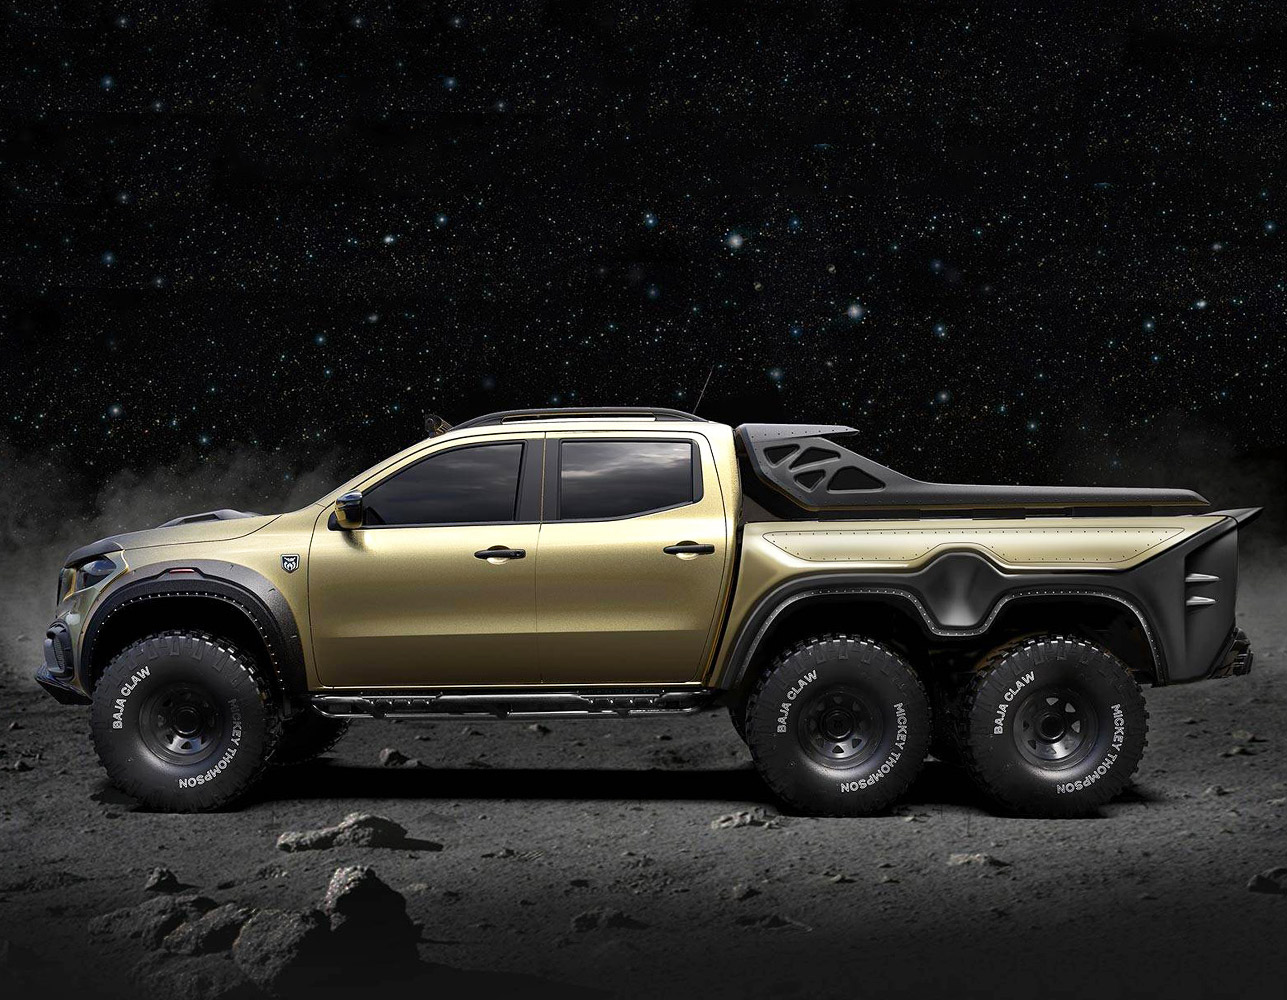 Mercedes-Benz EXY 6x6